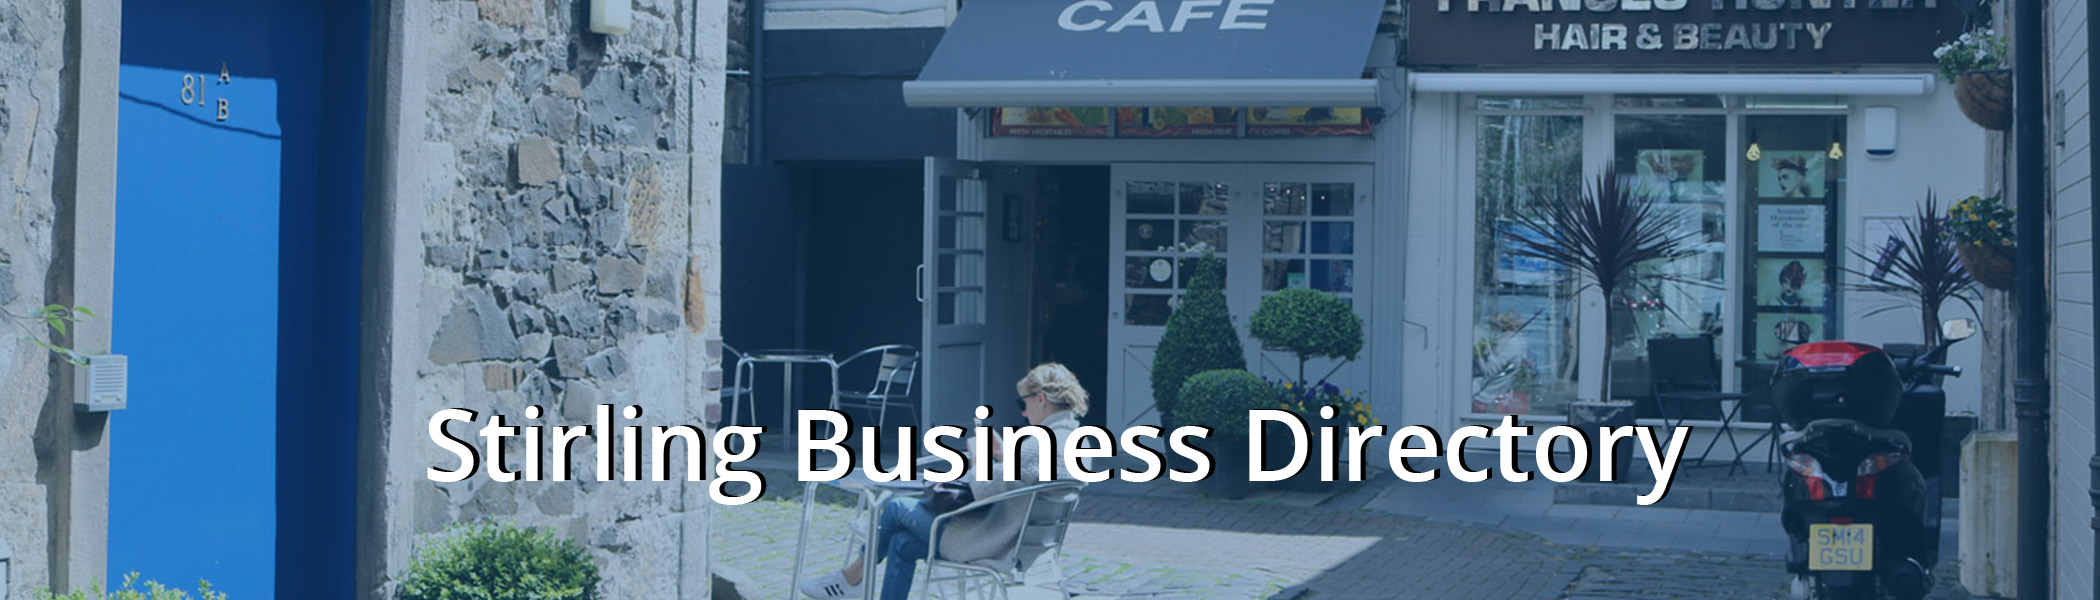 Stirling Business Directory